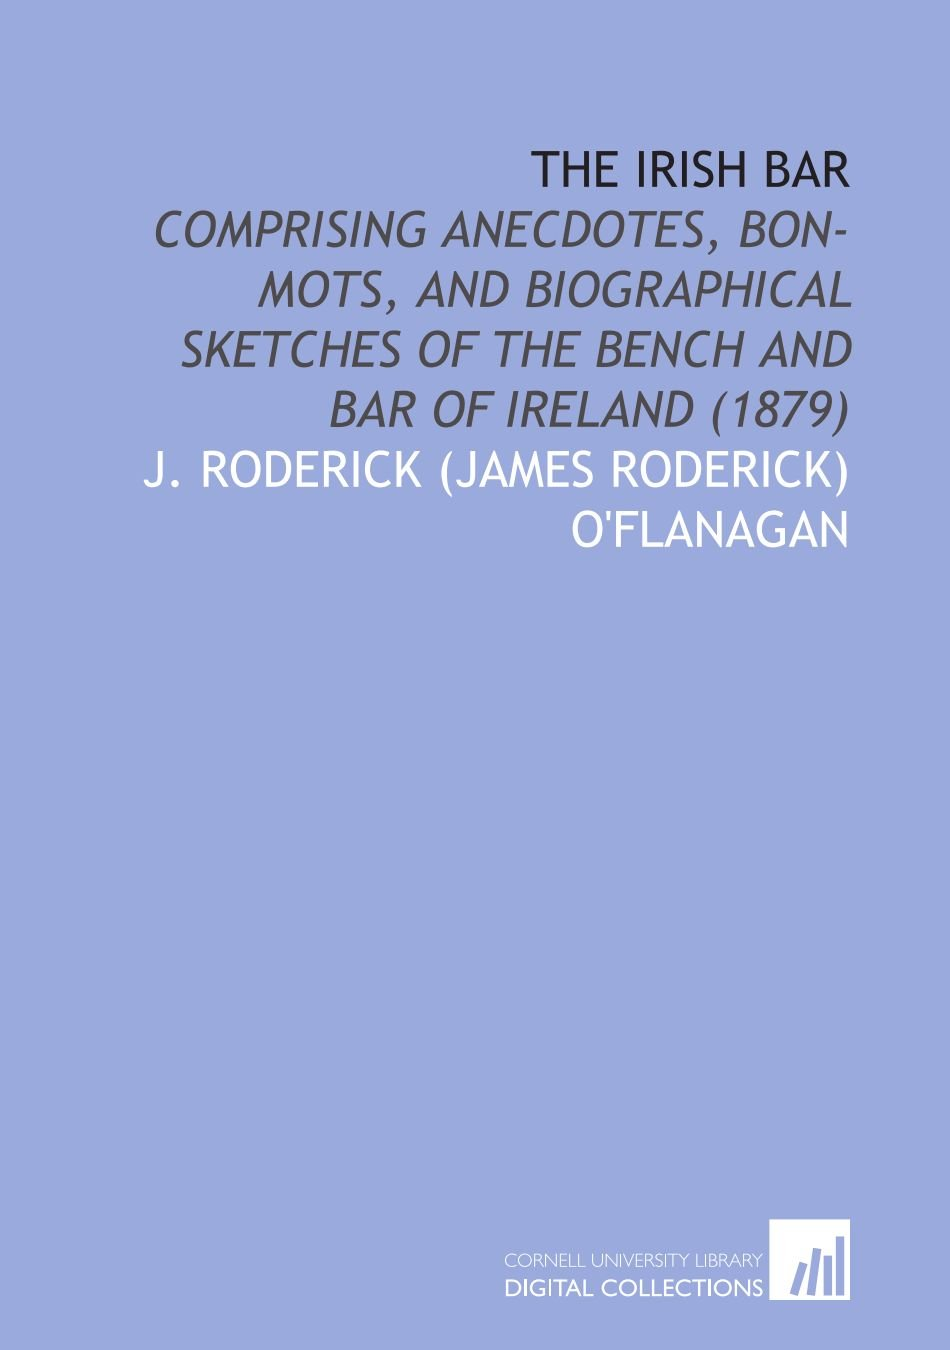 Download The Irish Bar: Comprising Anecdotes, Bon-Mots, and Biographical Sketches of the Bench and Bar of Ireland (1879) pdf